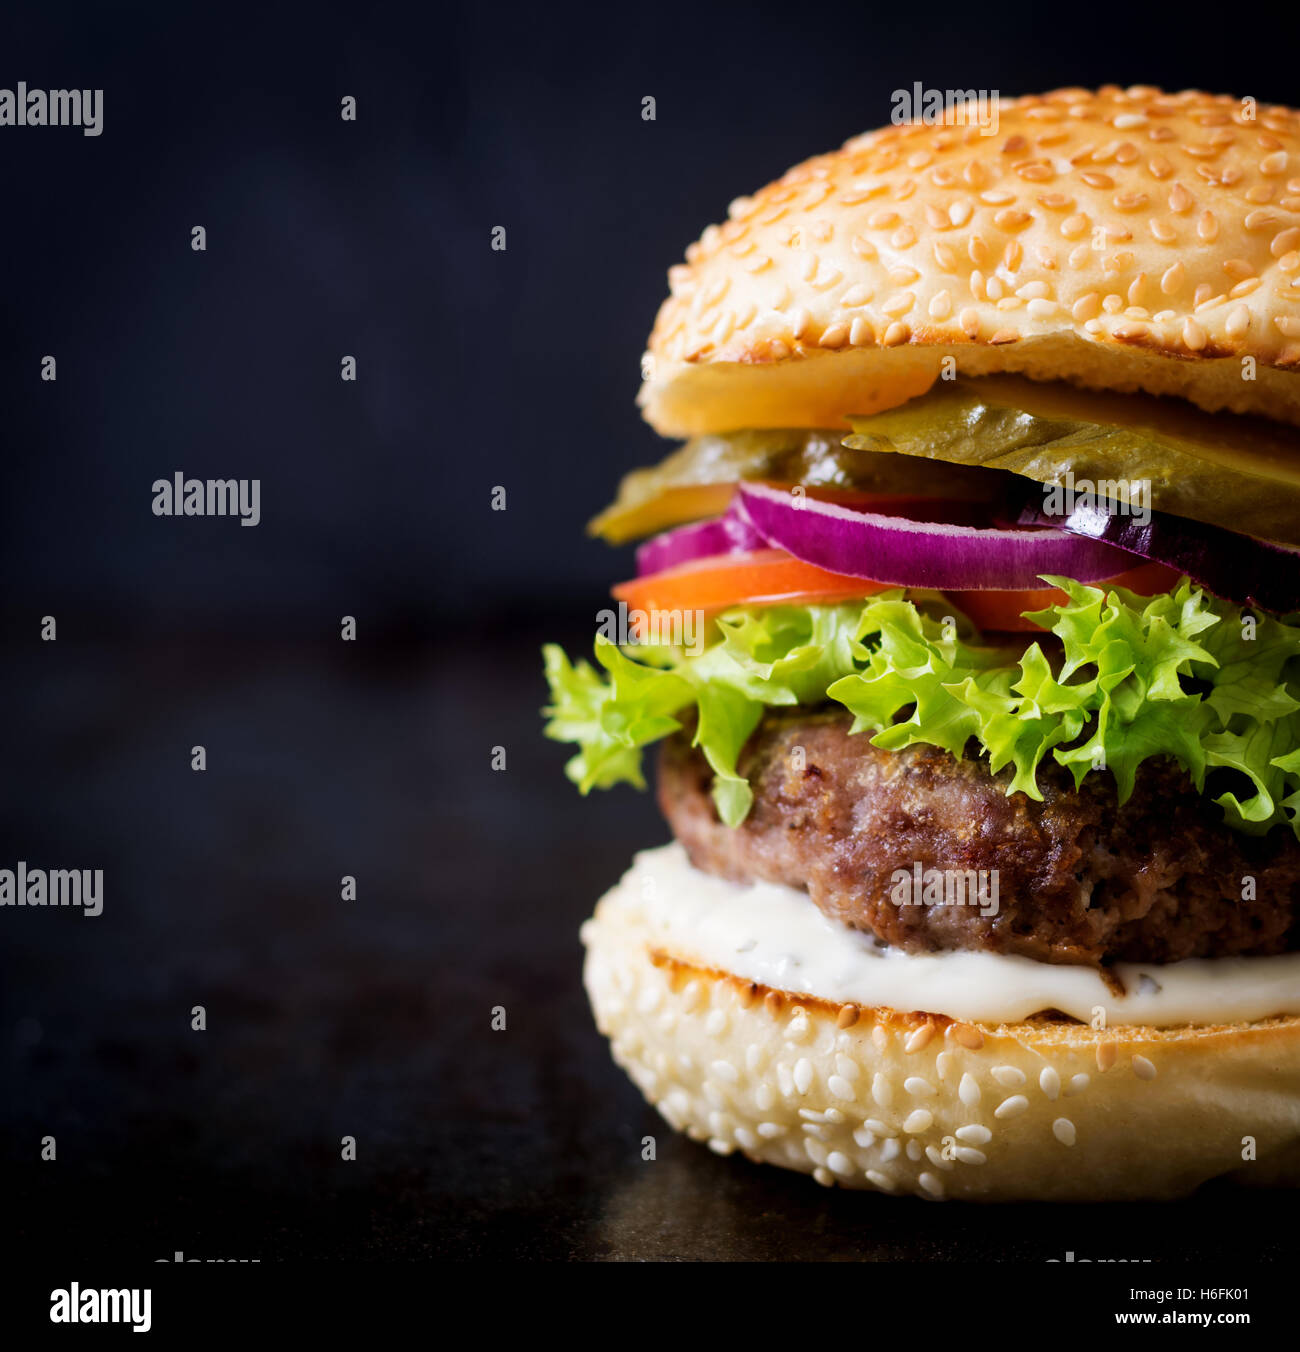 Big sandwich - hamburger burger with beef, pickles, tomato and tartar sauce on black background. - Stock Image